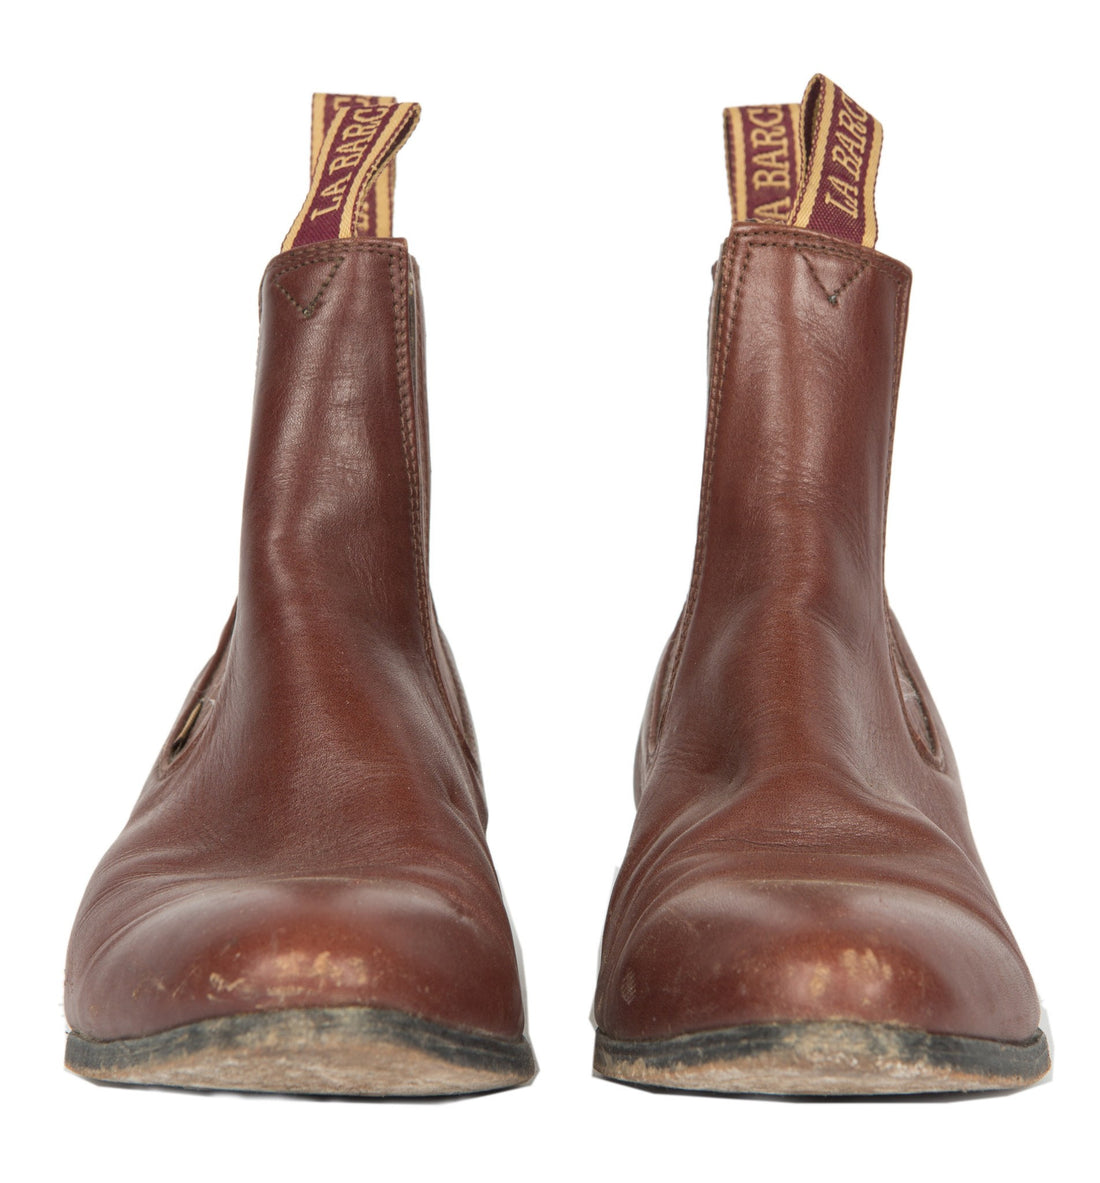 Vintage Brown Chelsea Boots, 10 - Vintage: Men's: Shoes - Iron and Resin